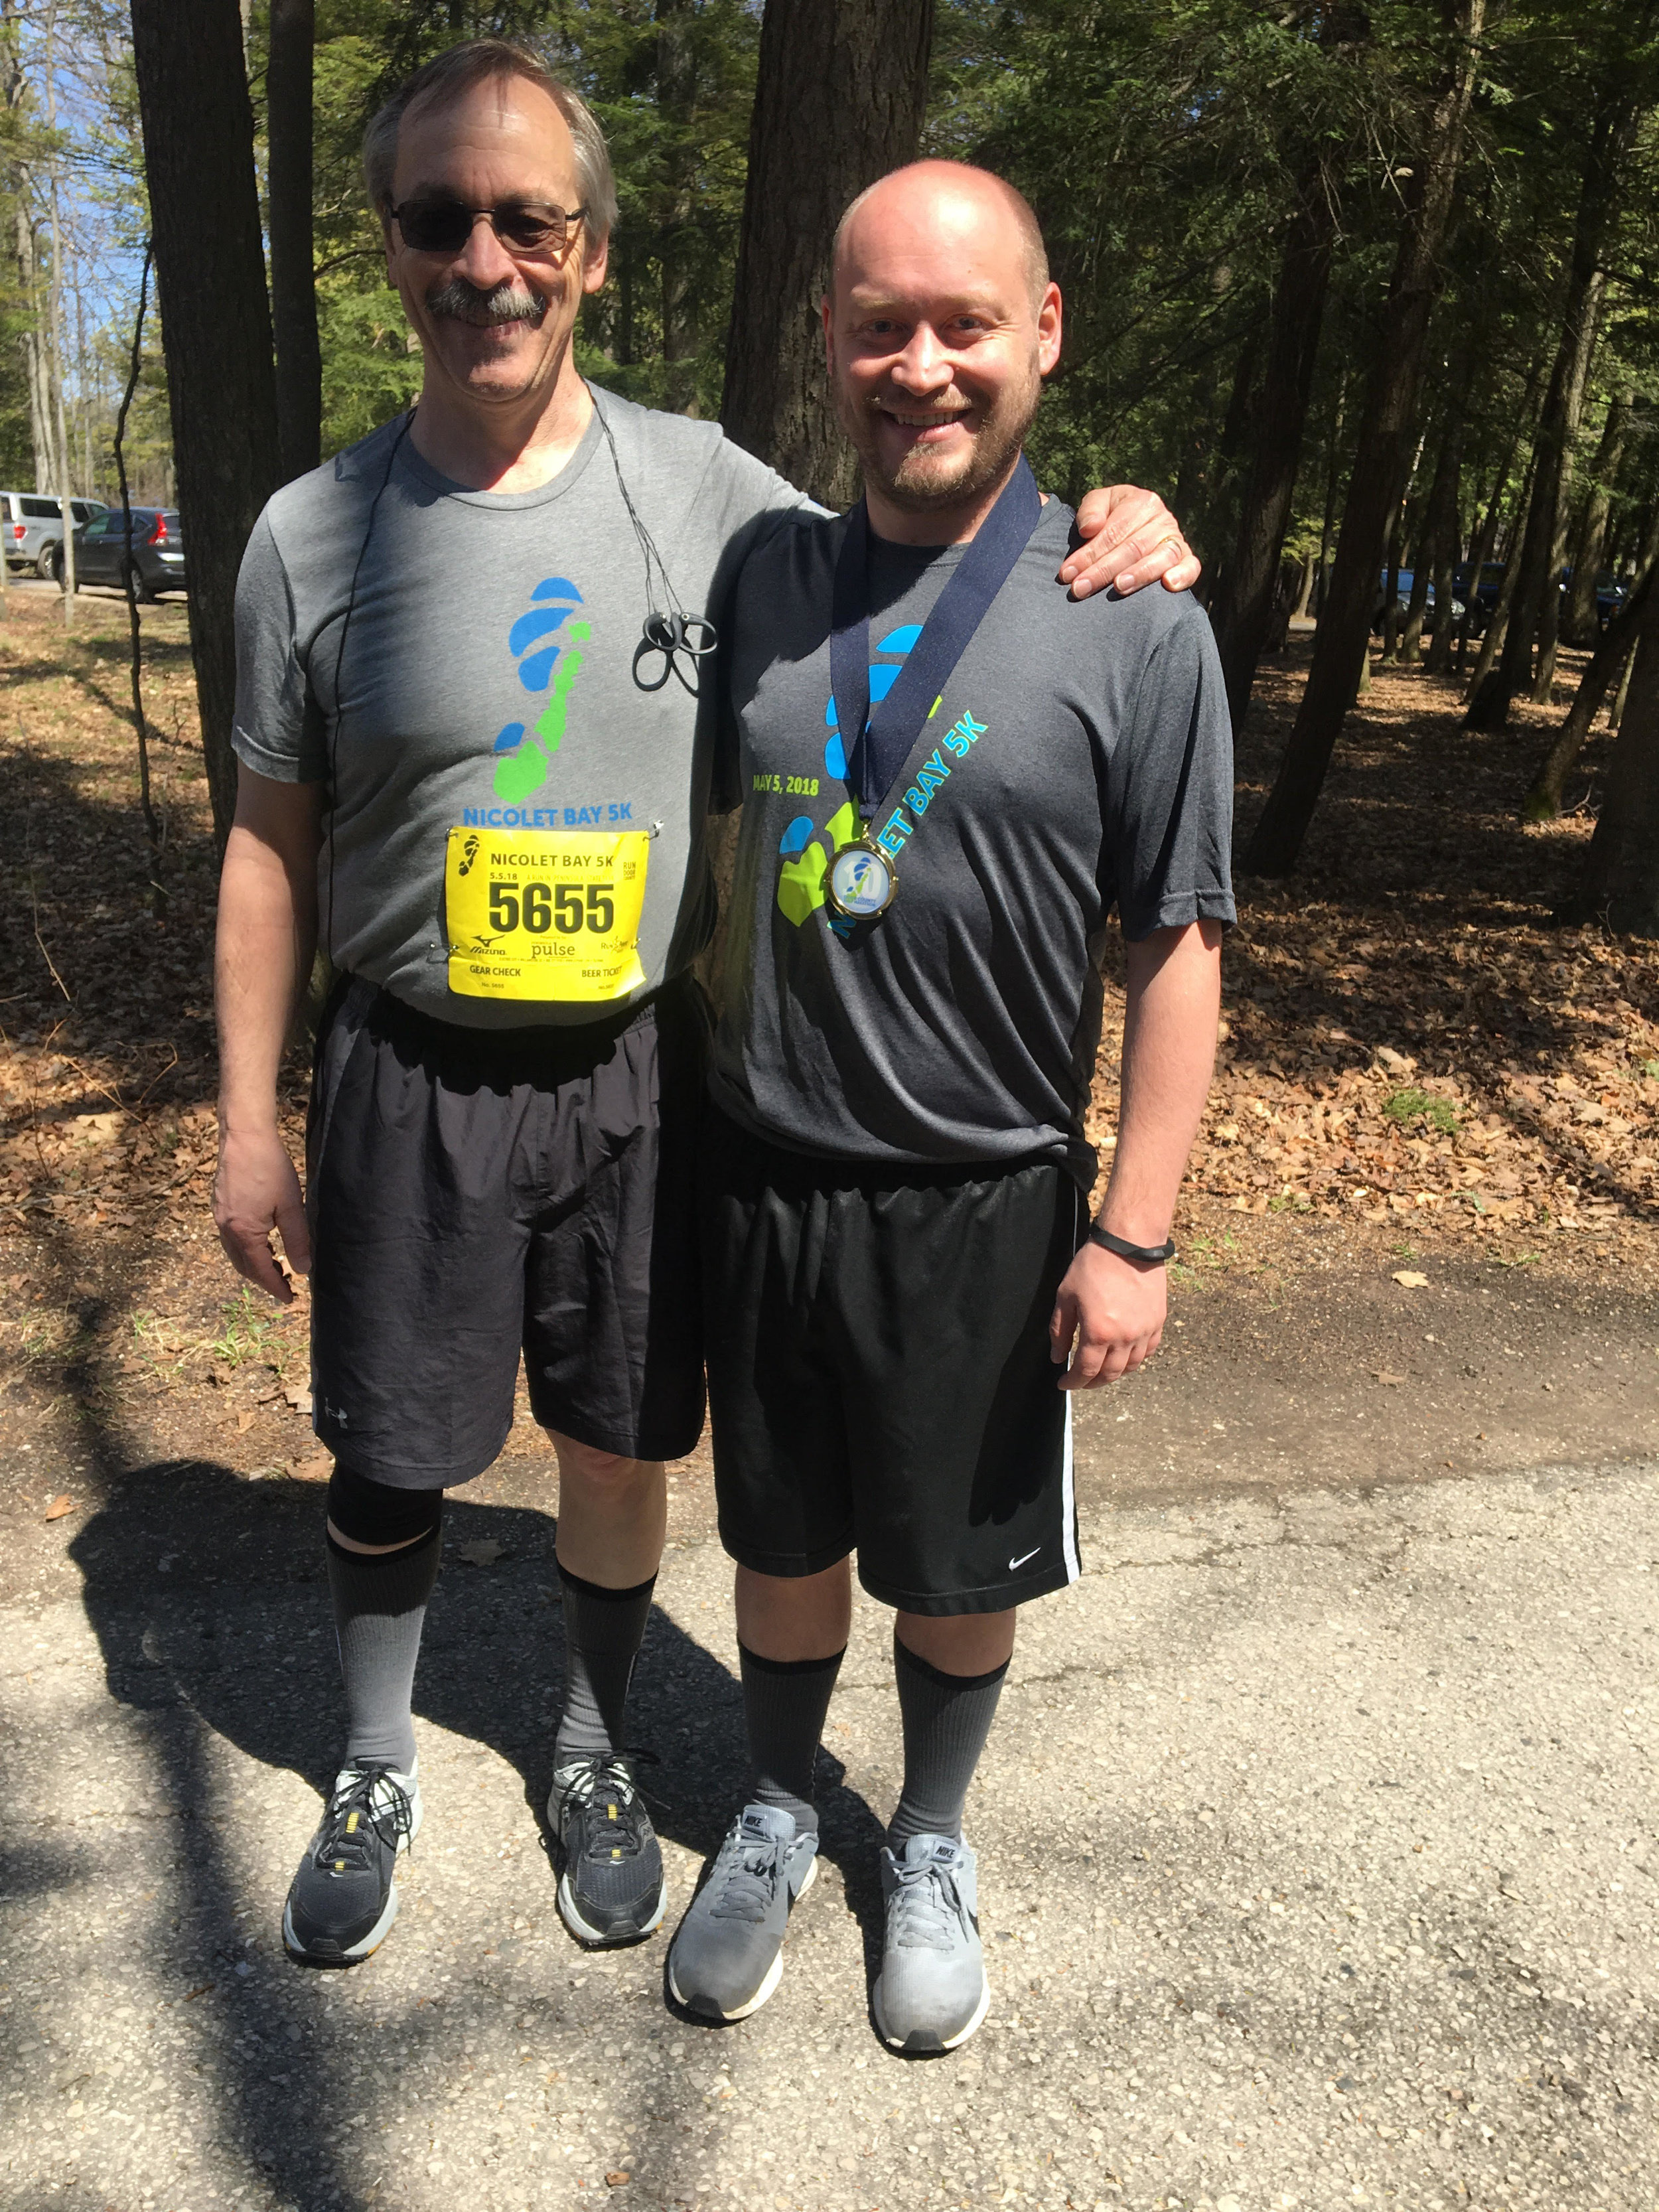 Fab 60! - John Schopf Sr. (left) and John Schopf Jr. (right) ran their 60th race together at the Hey Hey 5K in Baileys Harbor on Sept. 22. Way to go, John and John!